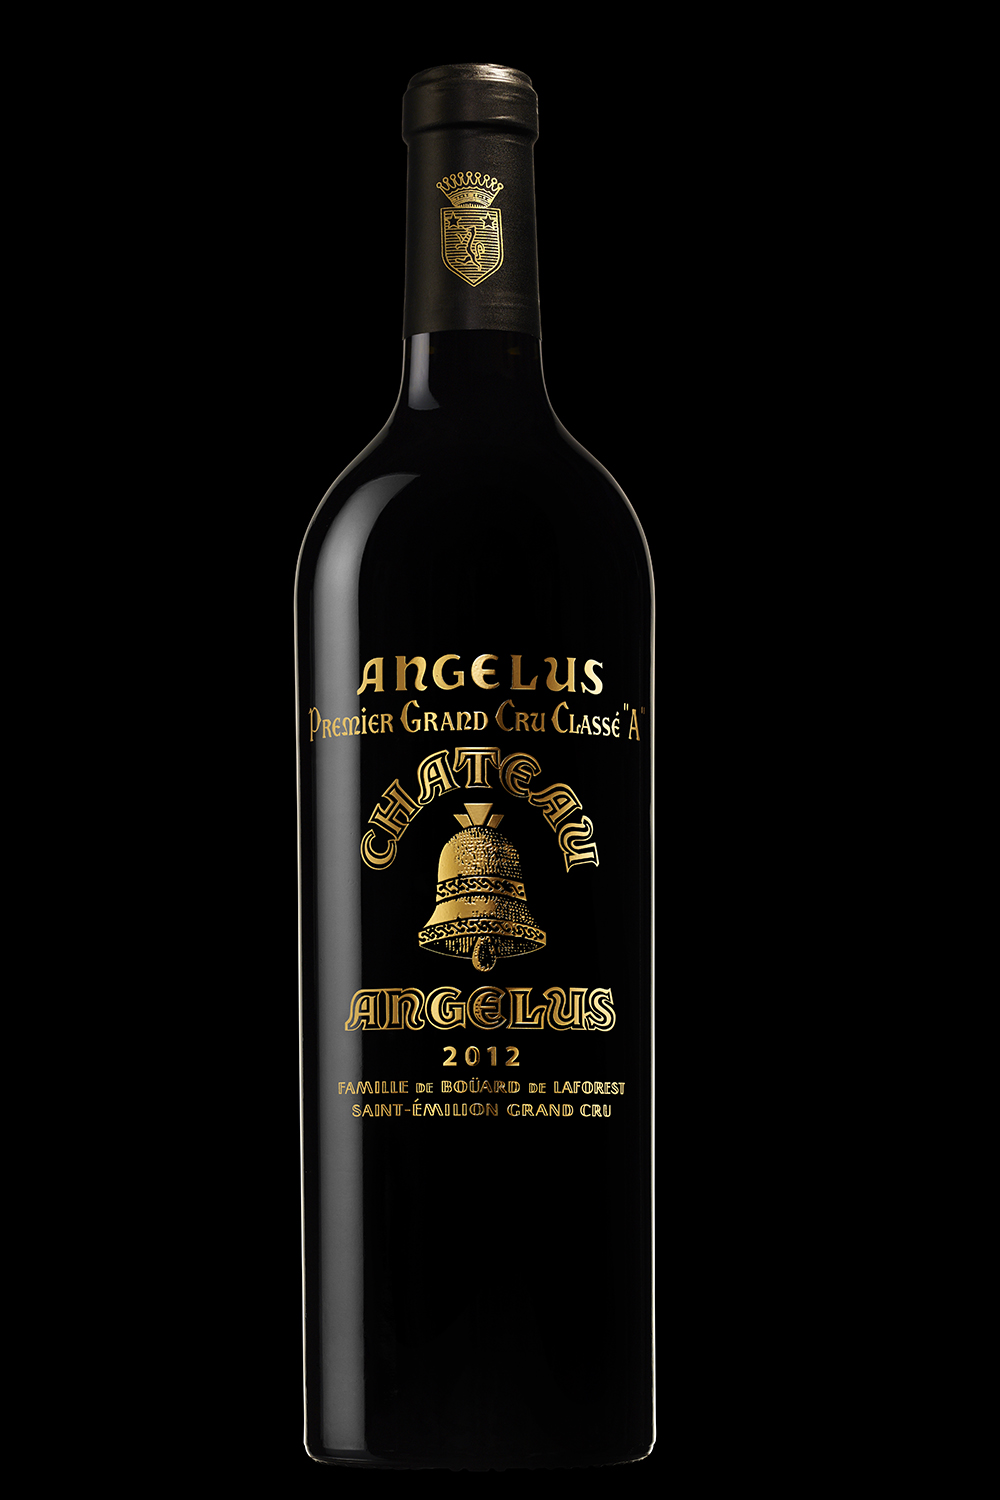 Vinexpo chateau angelus to celebrate 39 a 39 status with for Chateau angelus